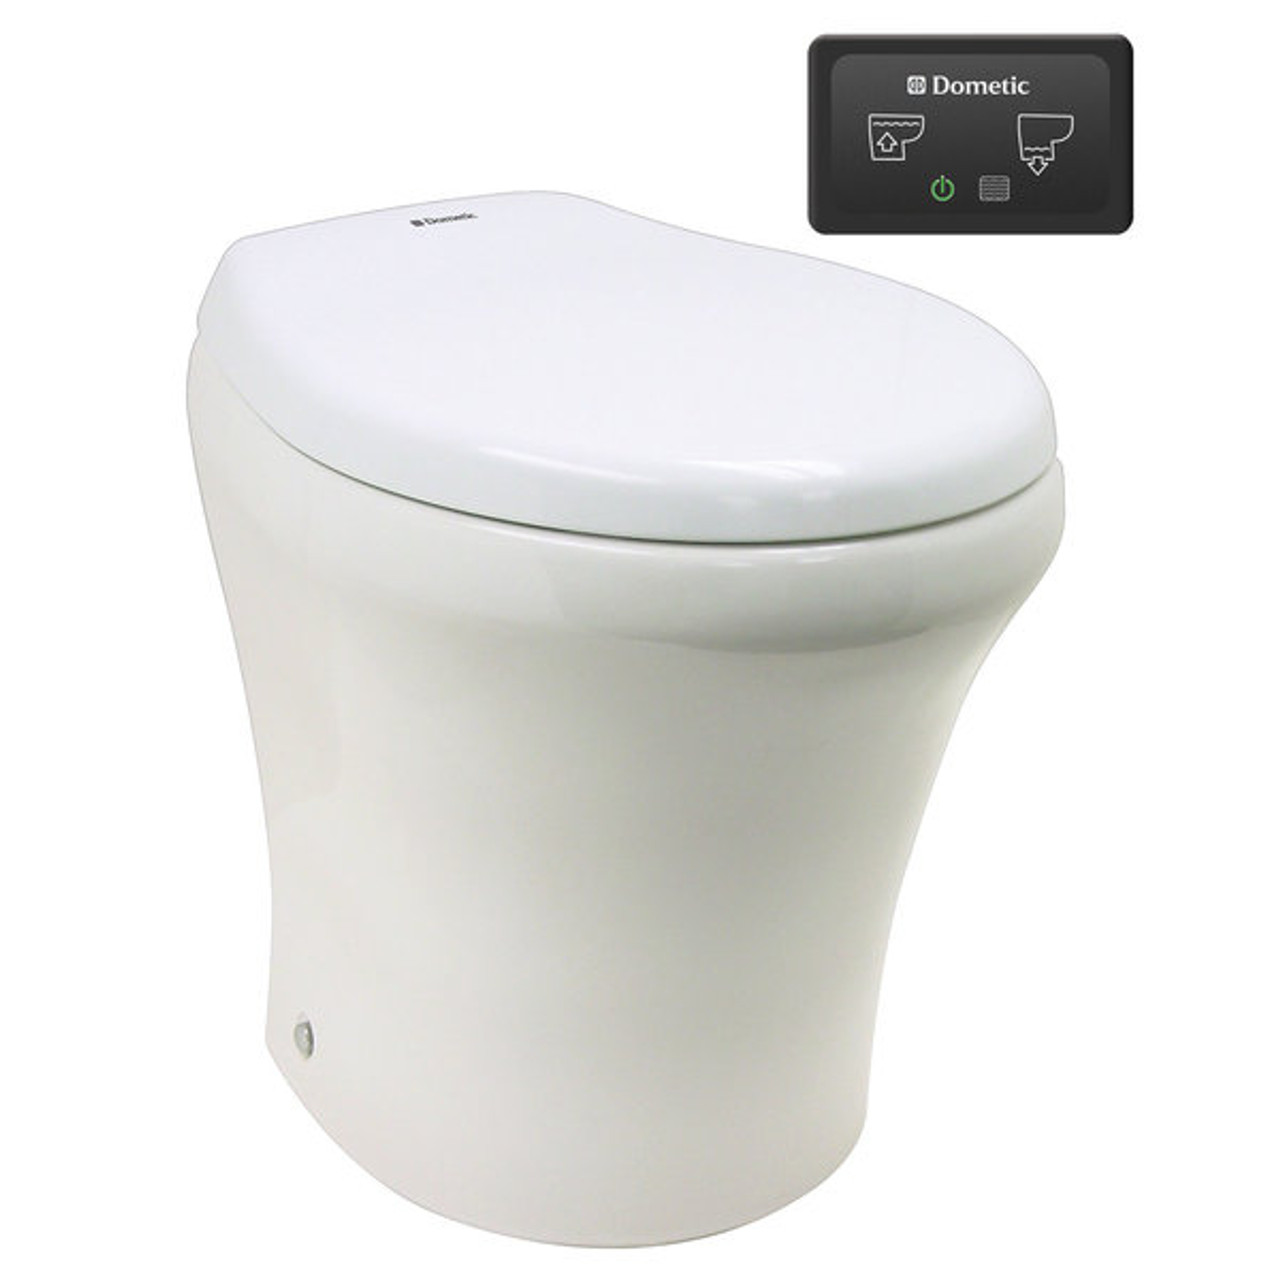 8540 Fresh Water Macerator Toilet Dometic